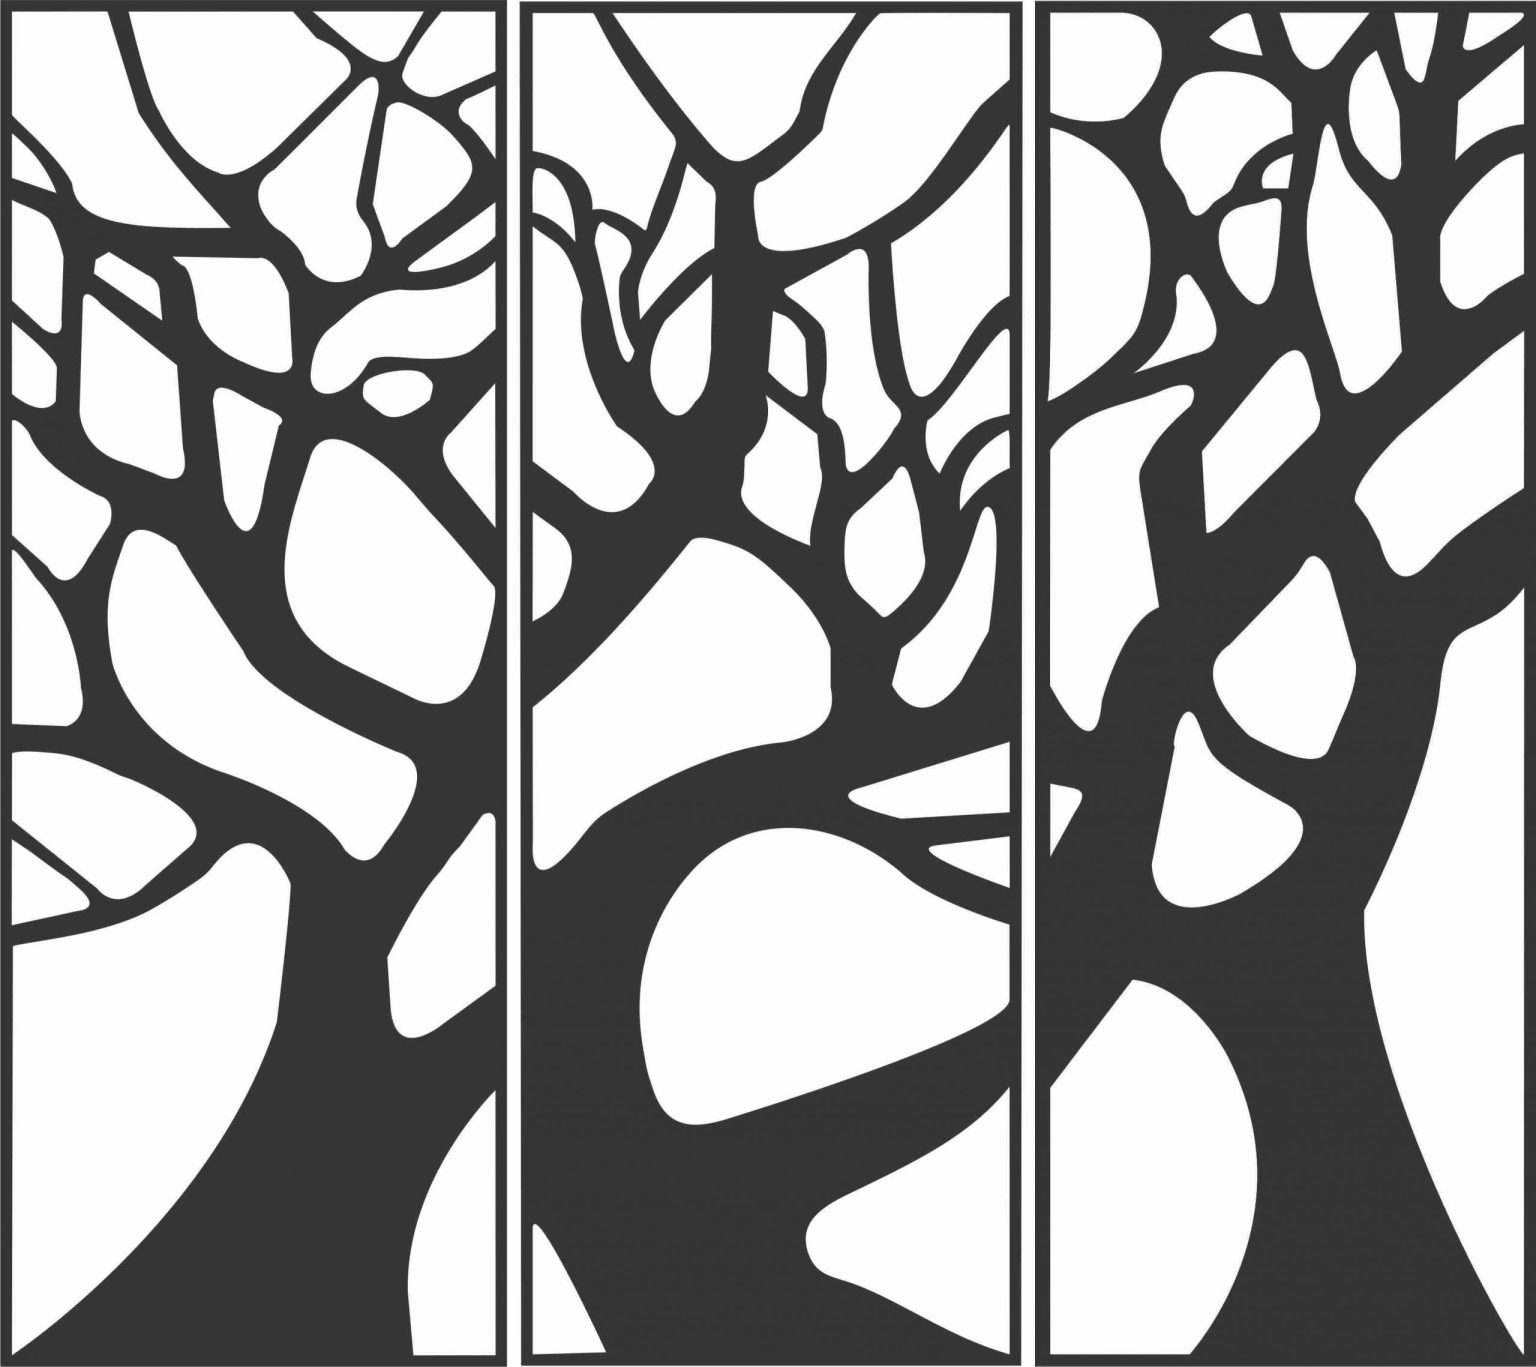 Decorative Screen Patterns For Laser Cutting 72 Free DXF File